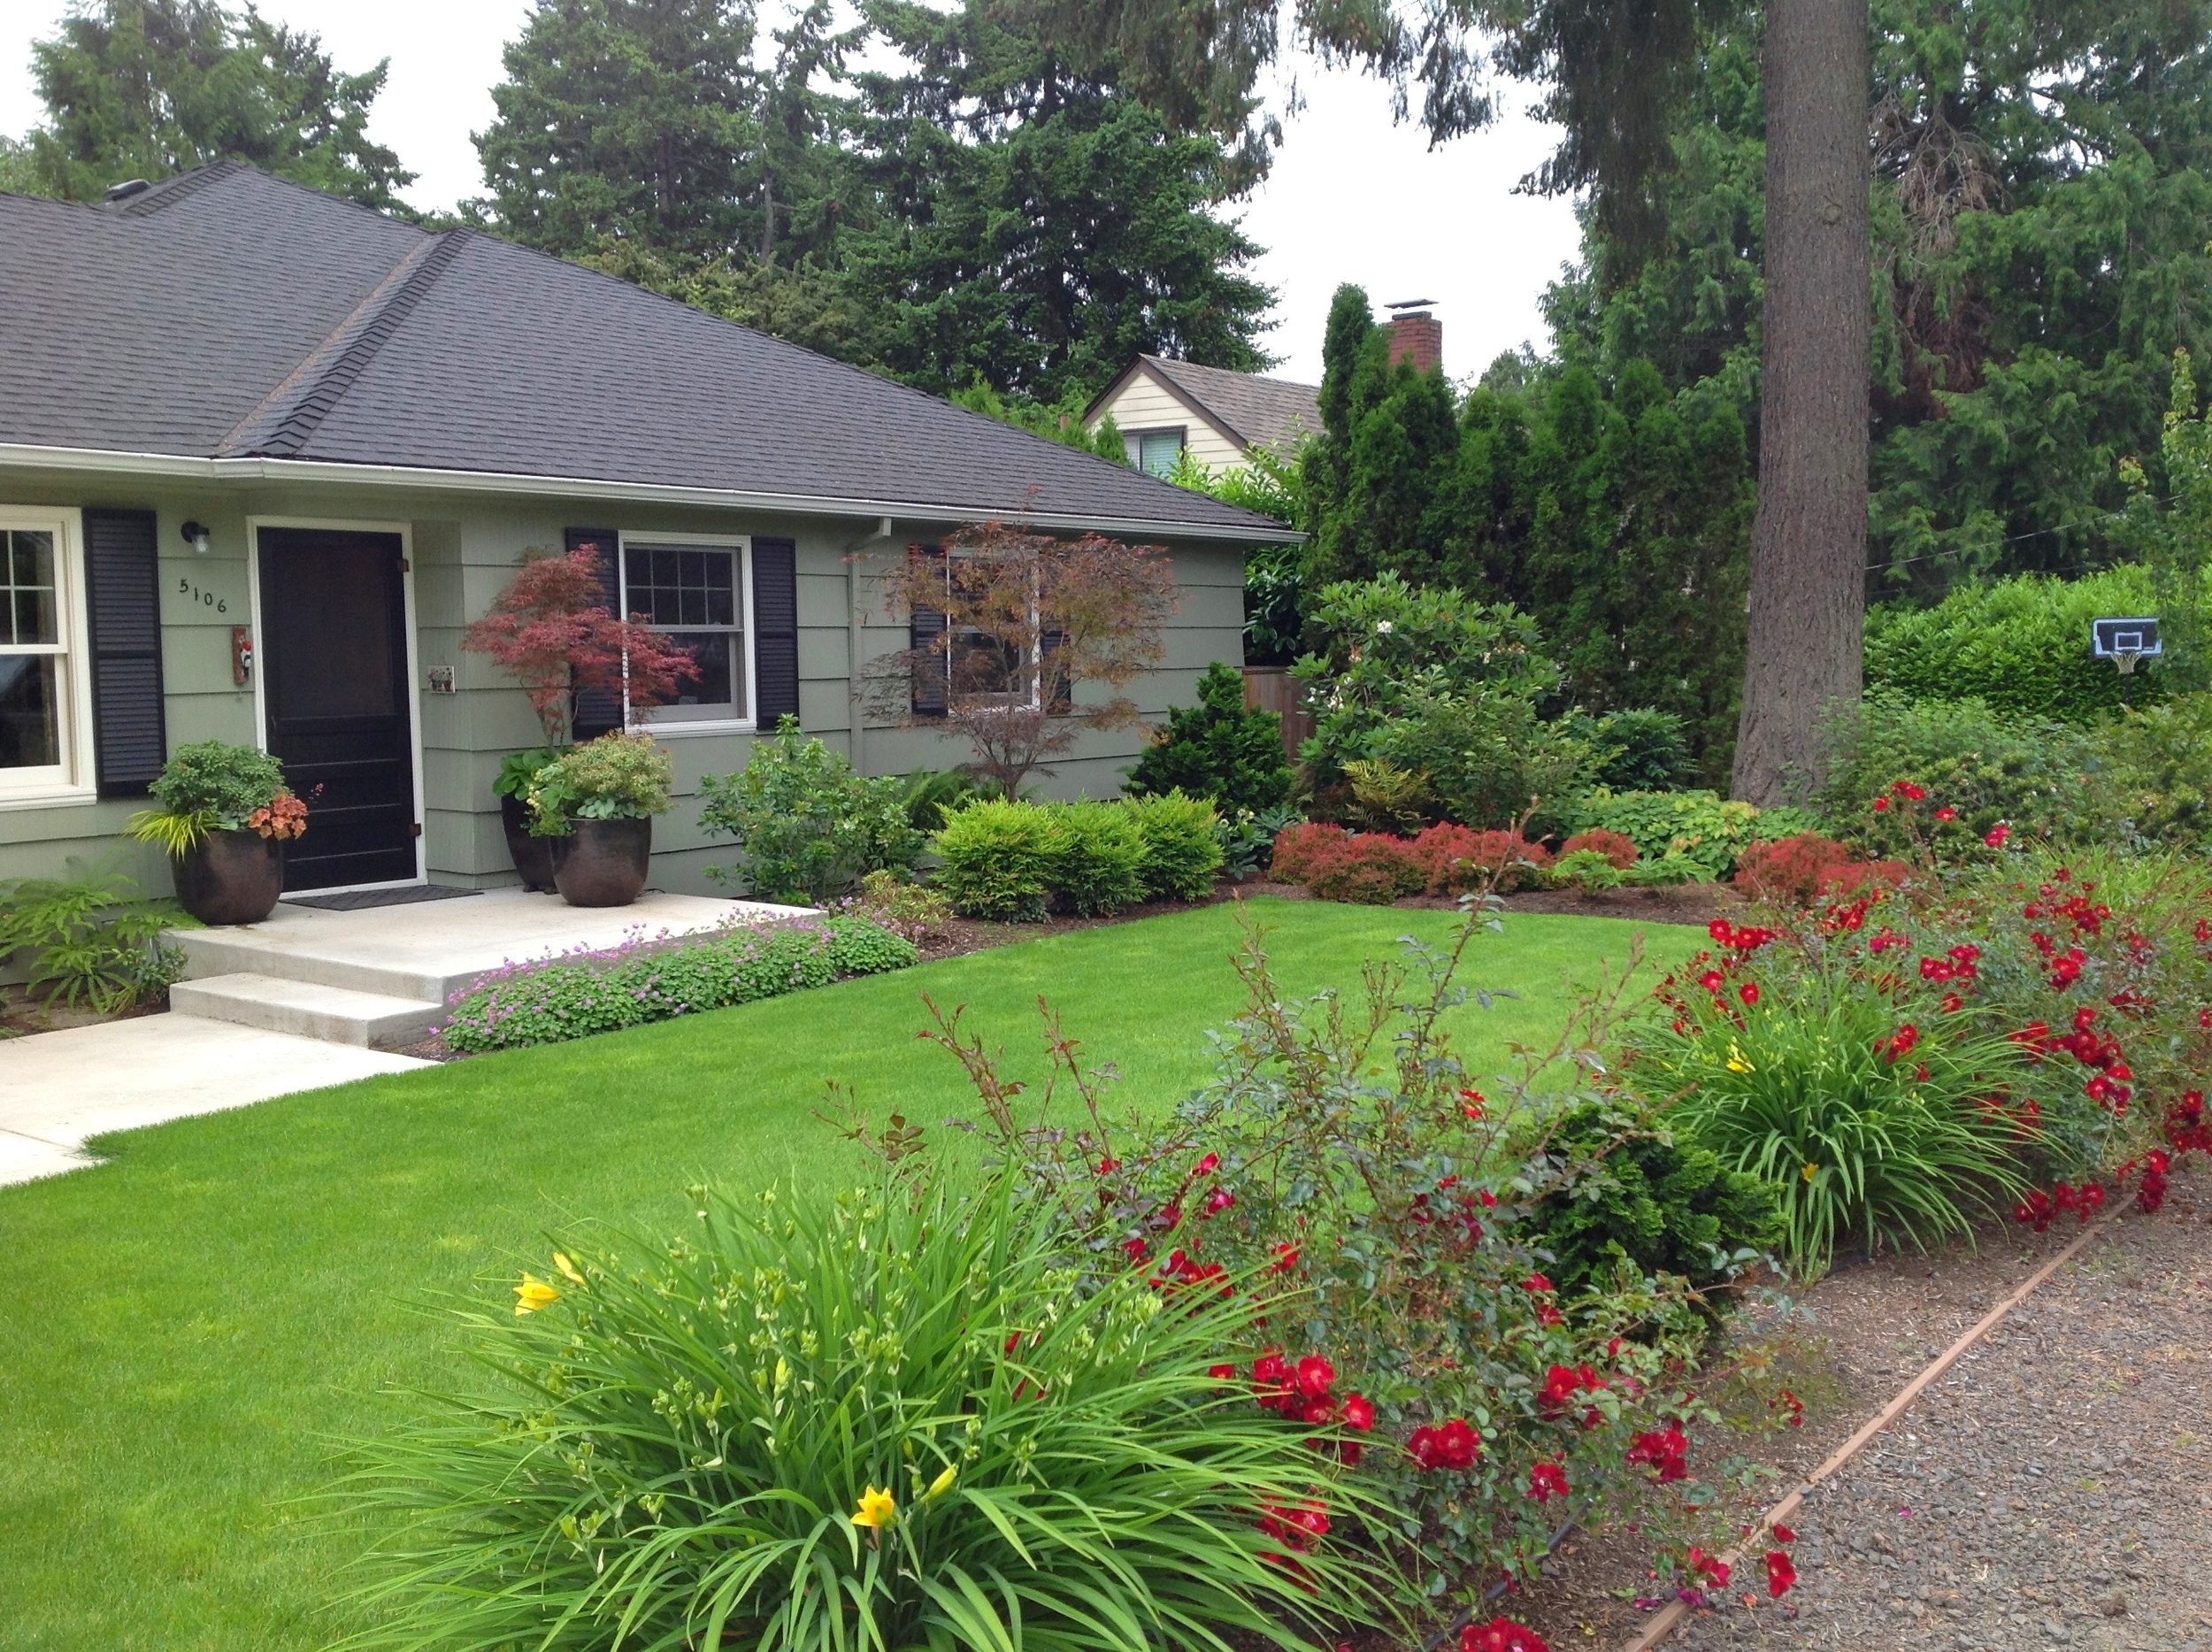 Rathkey front yard, pho by Terry, sent 5-26-2015, FAVE.JPG